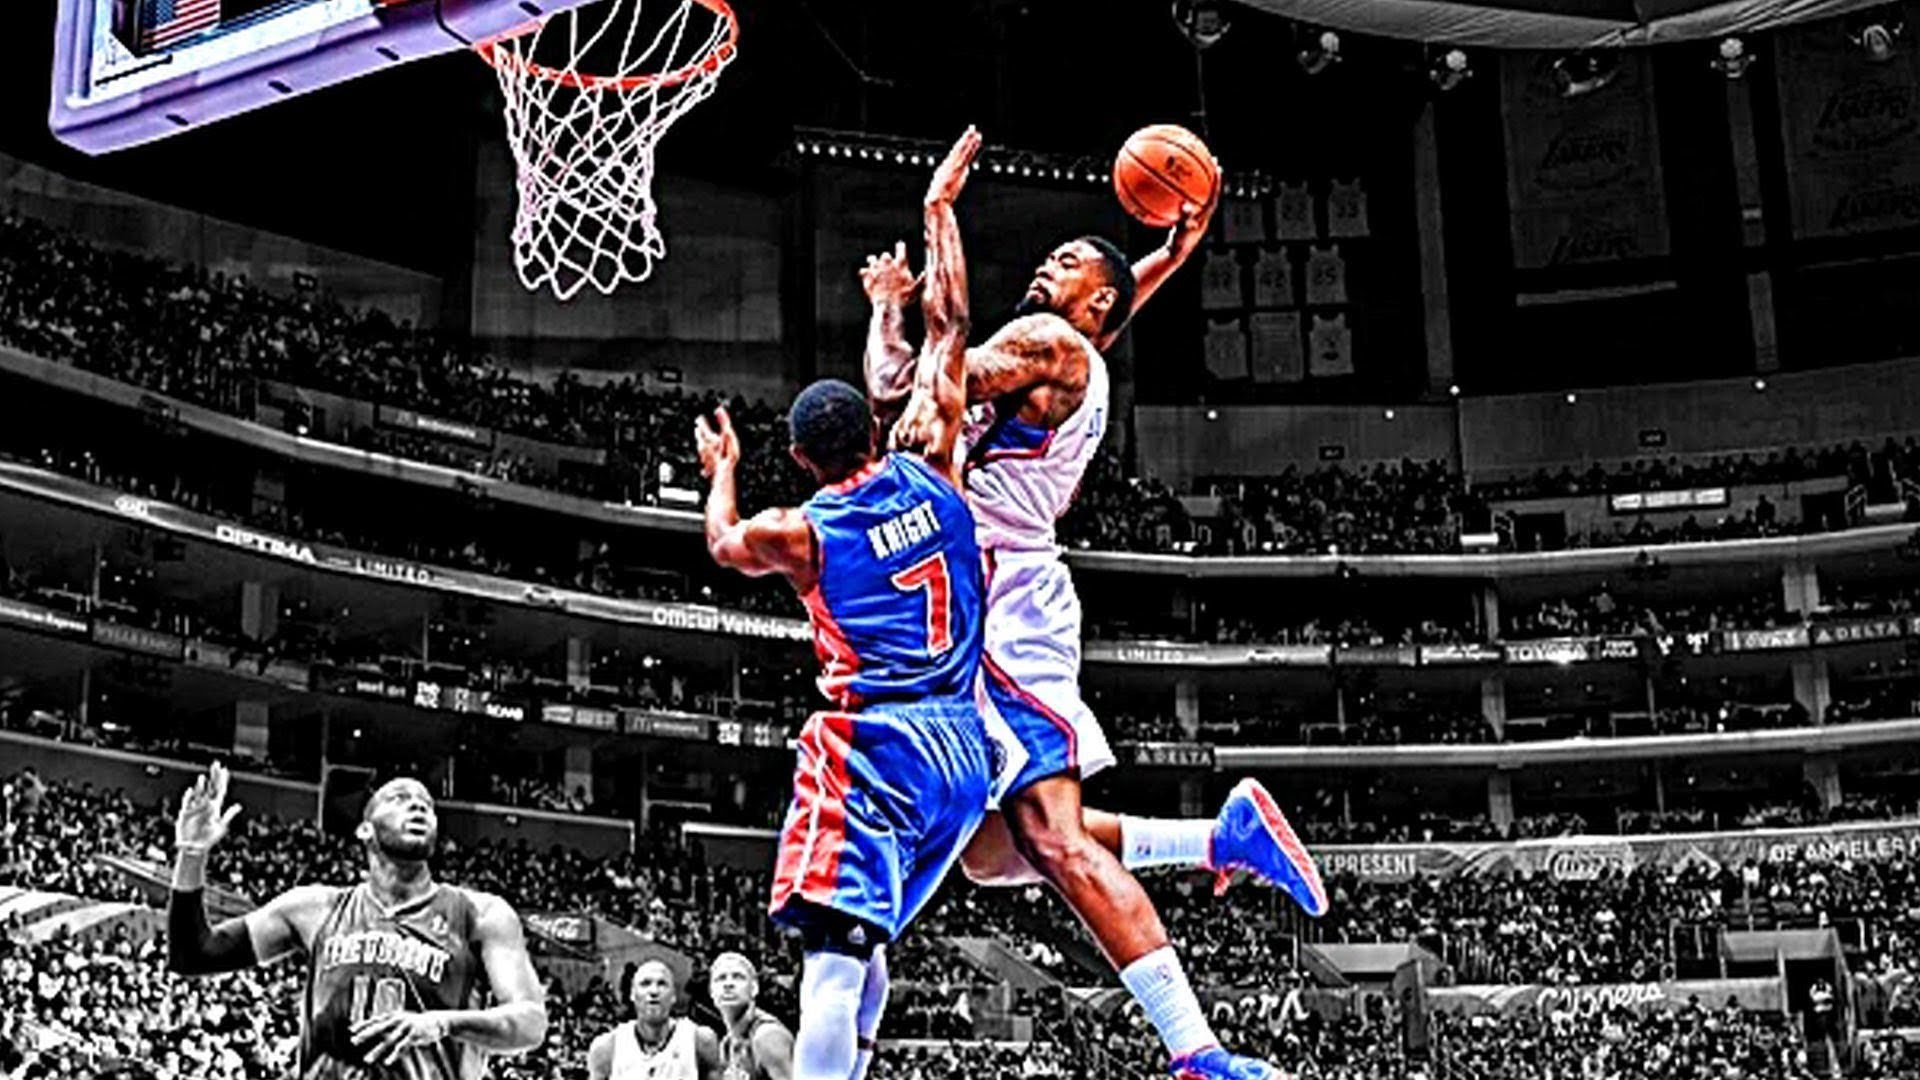 Knicks Iphone Wallpaper Lebron James Slam Dunk Wallpaper 63 Images